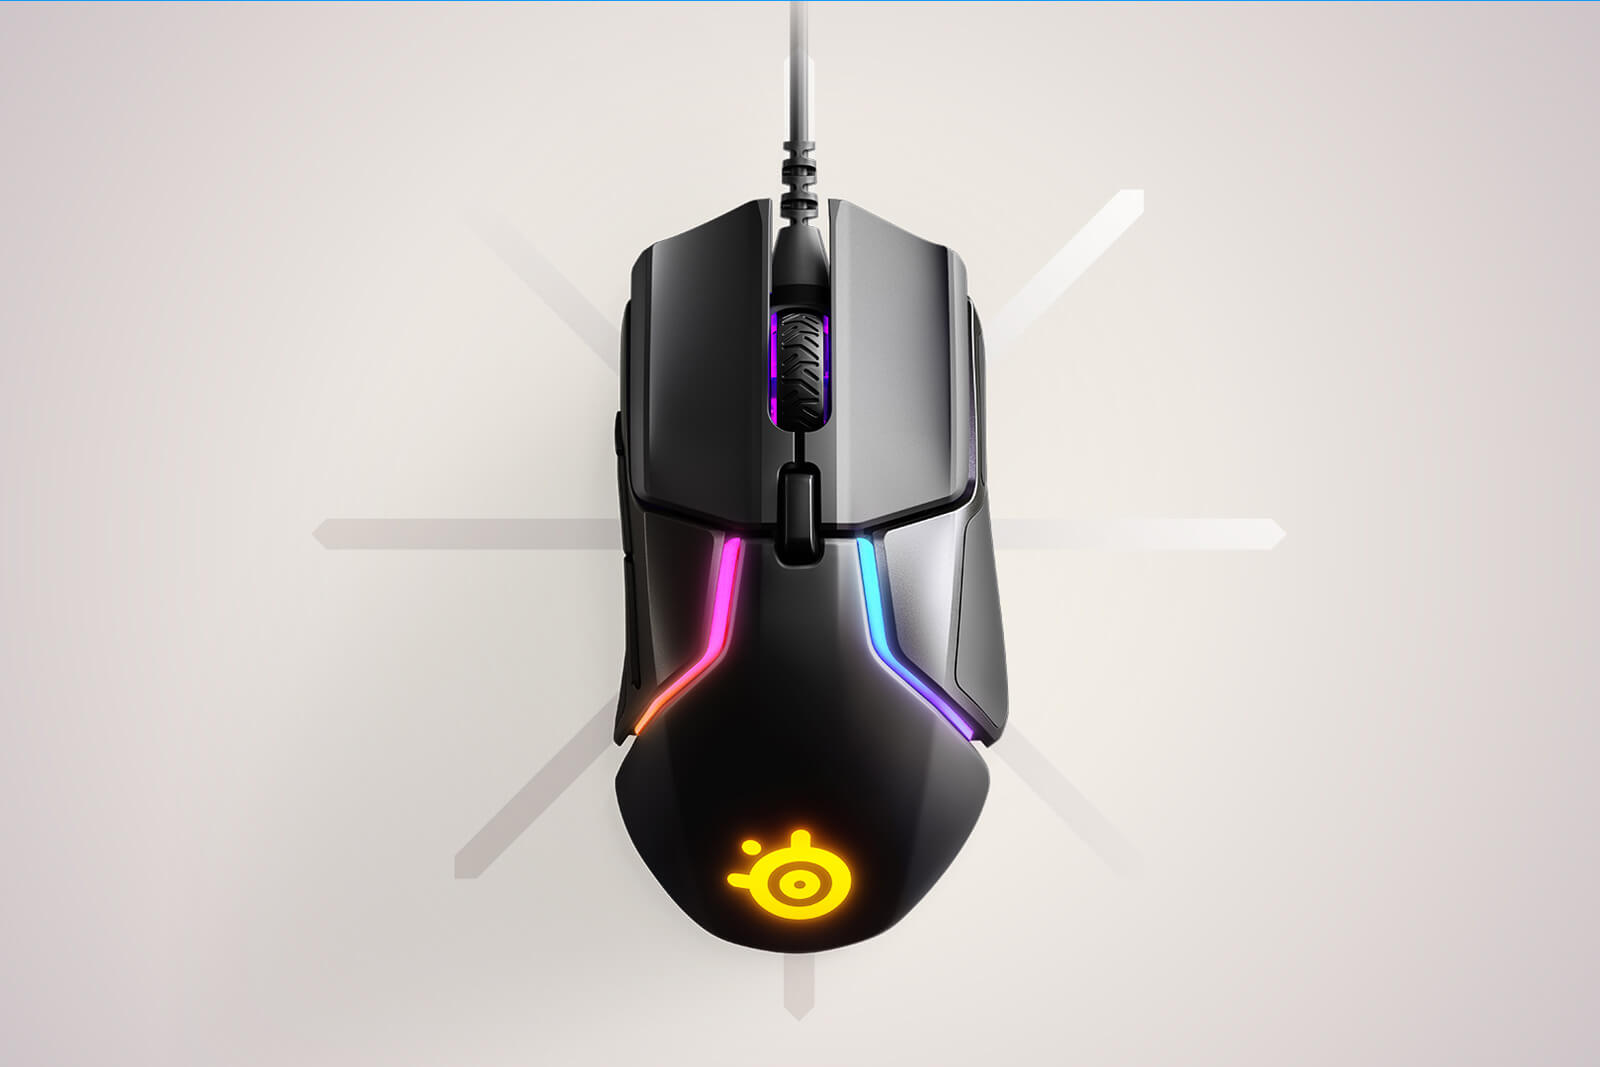 SteelSeries Rival 600 Gaming Mouse Tracks Cursor Position Even When Lifted